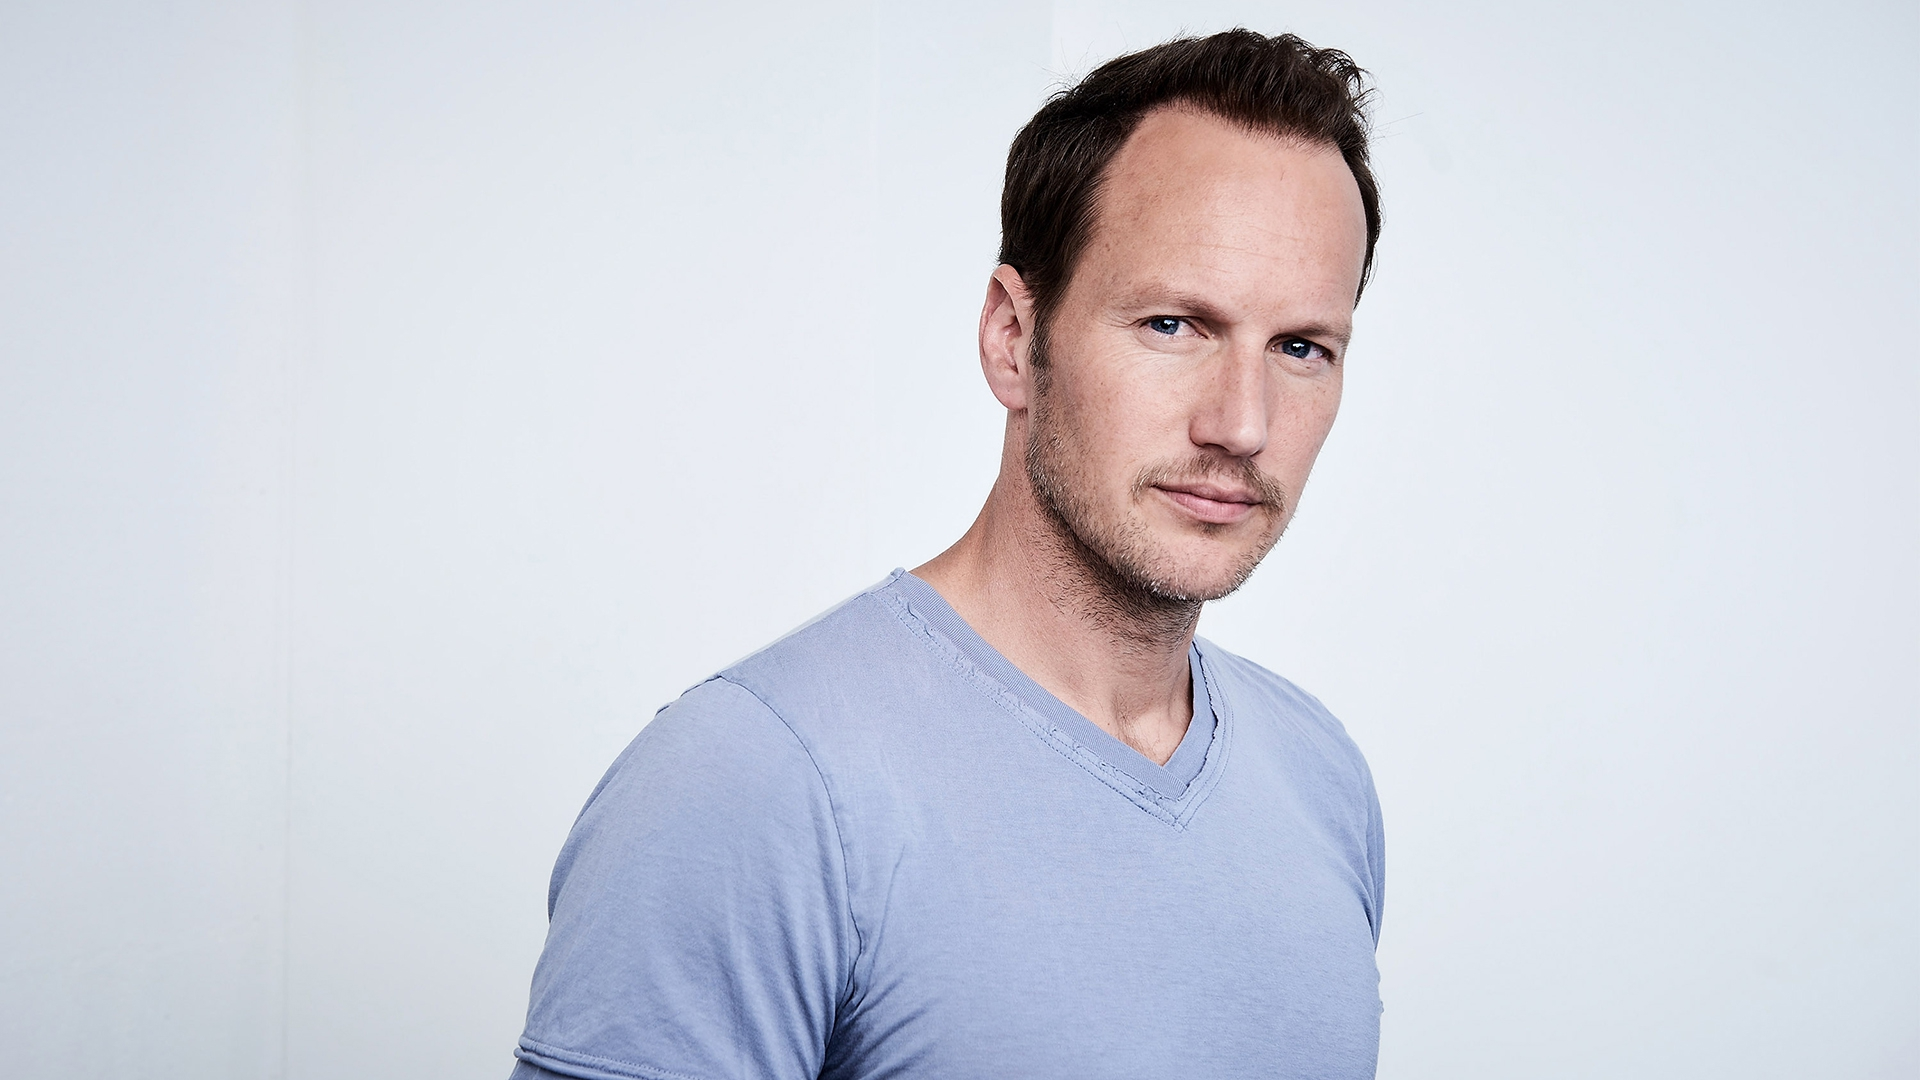 Patrick Wilson Wallpapers Images Photos Pictures Backgrounds 1920x1080